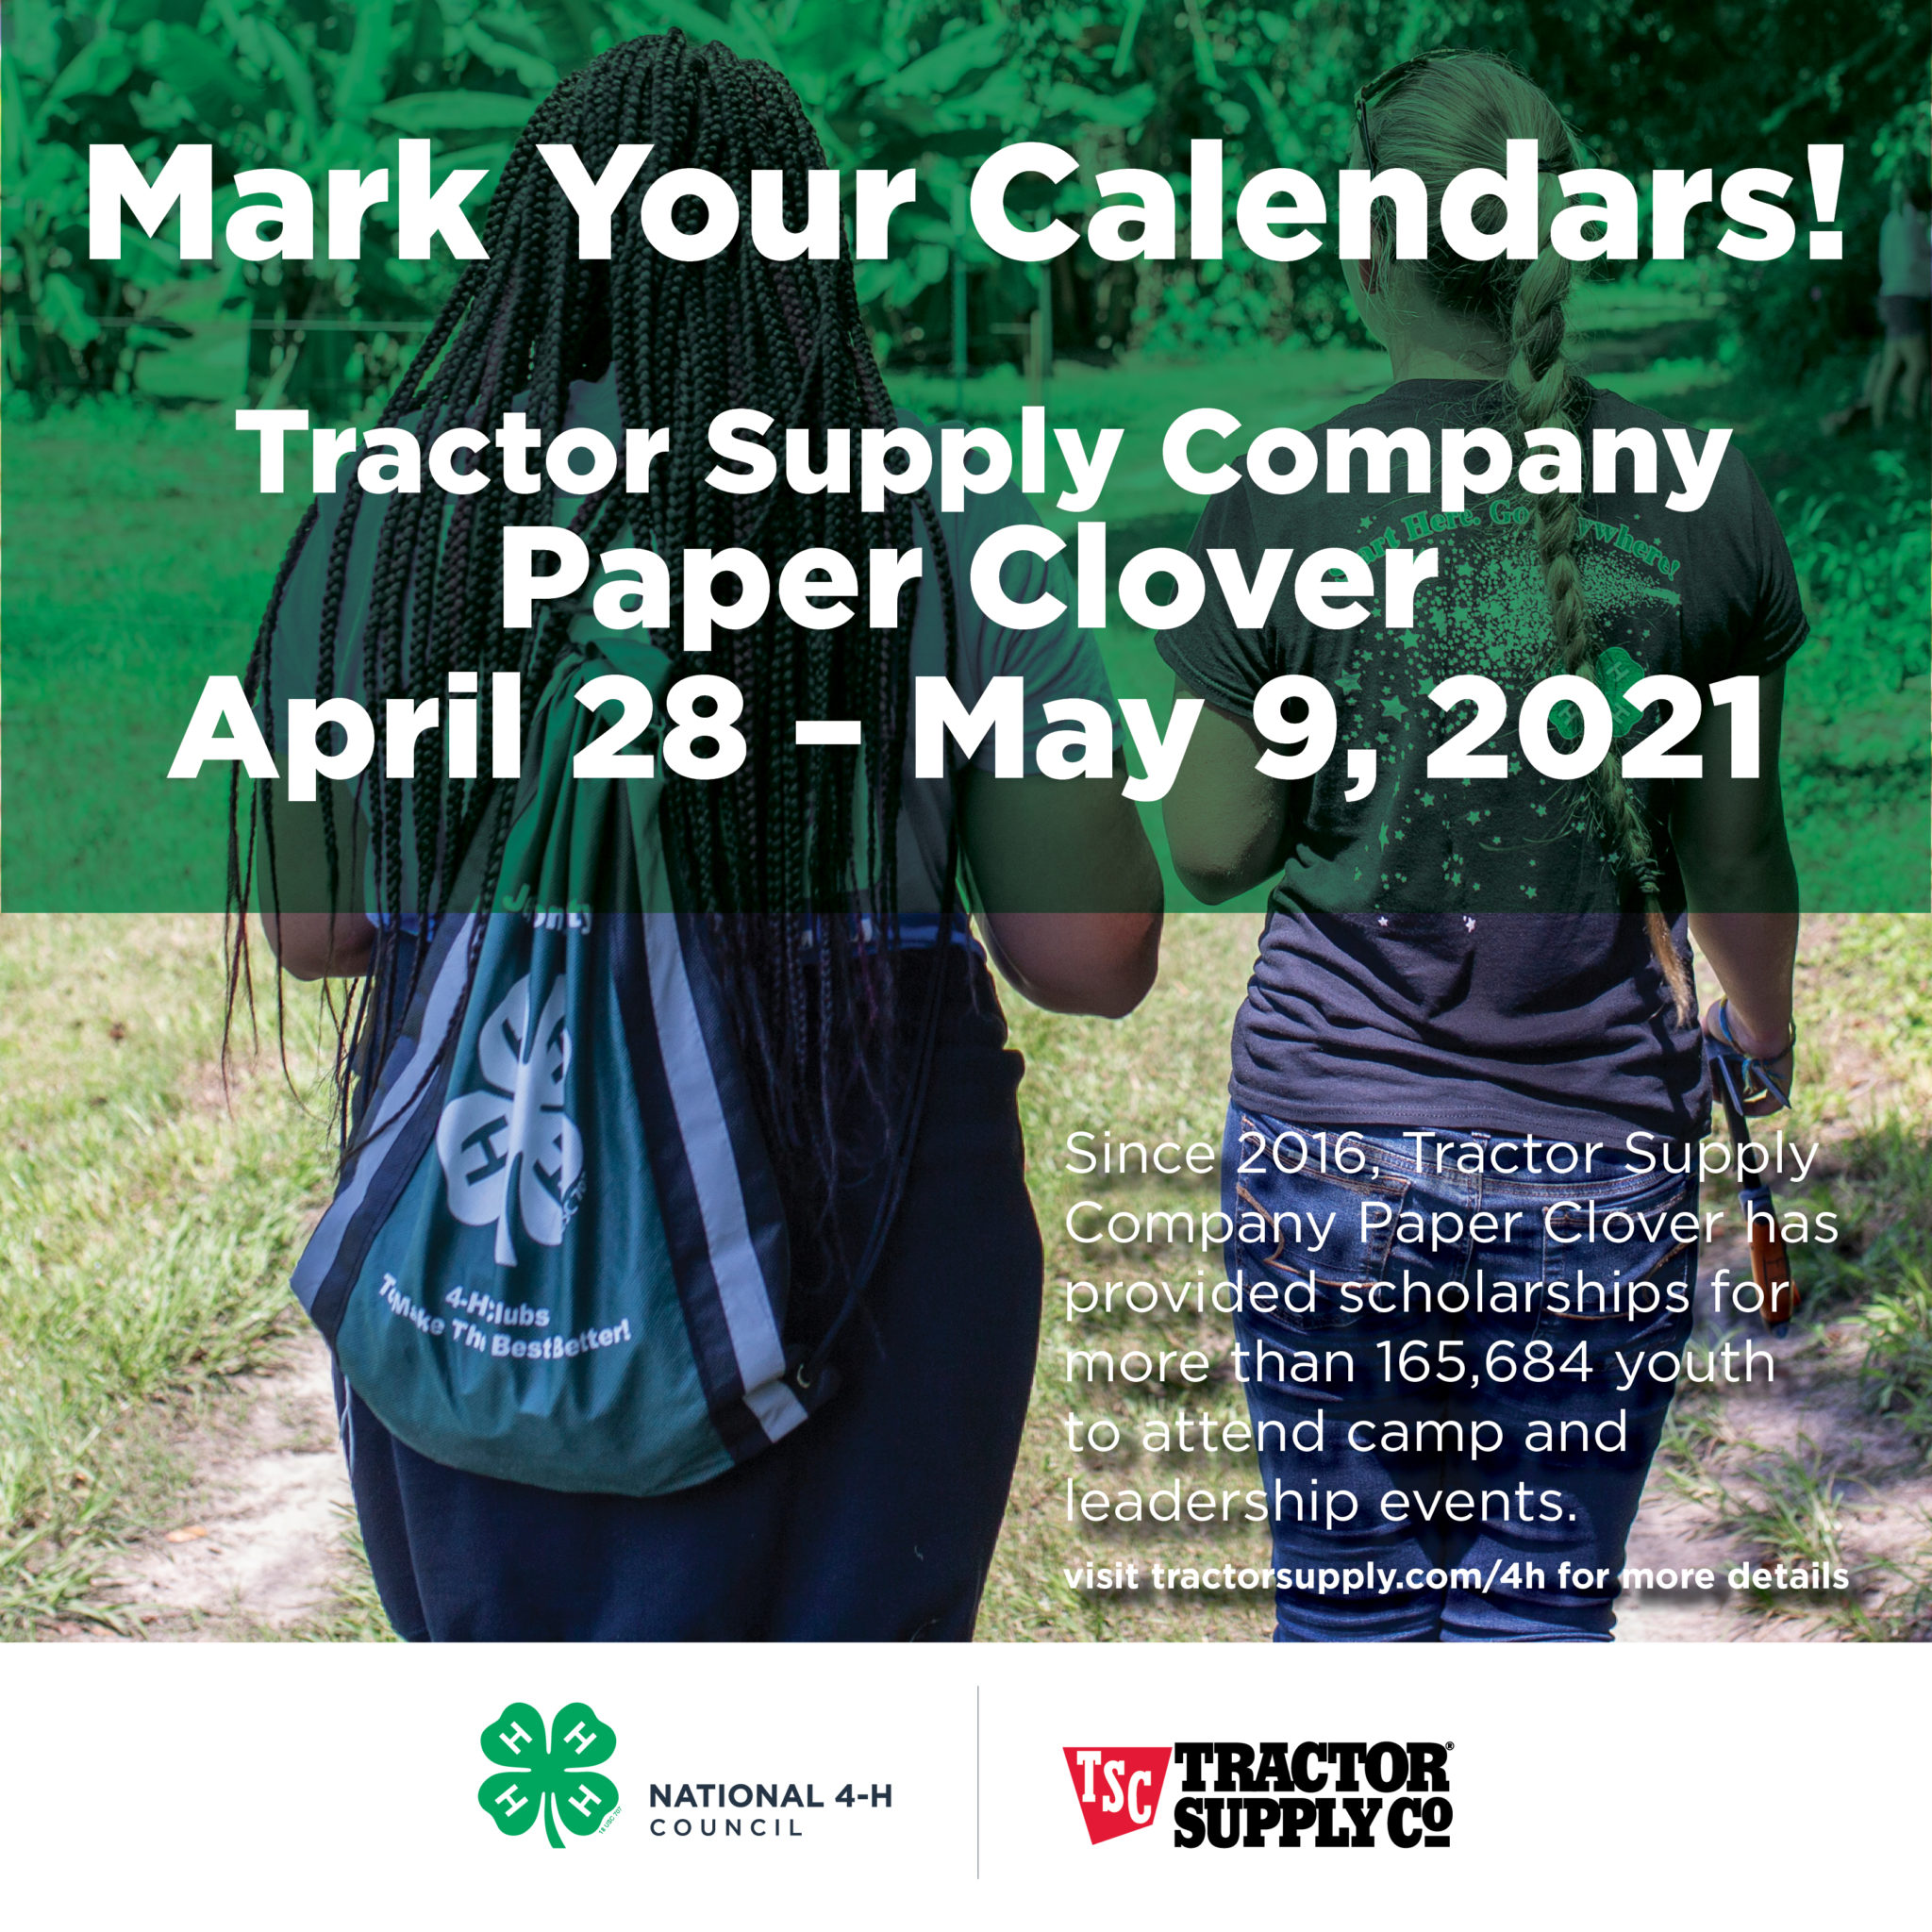 TSC Mark your clover ad with background image of two kids walking with backpacks on